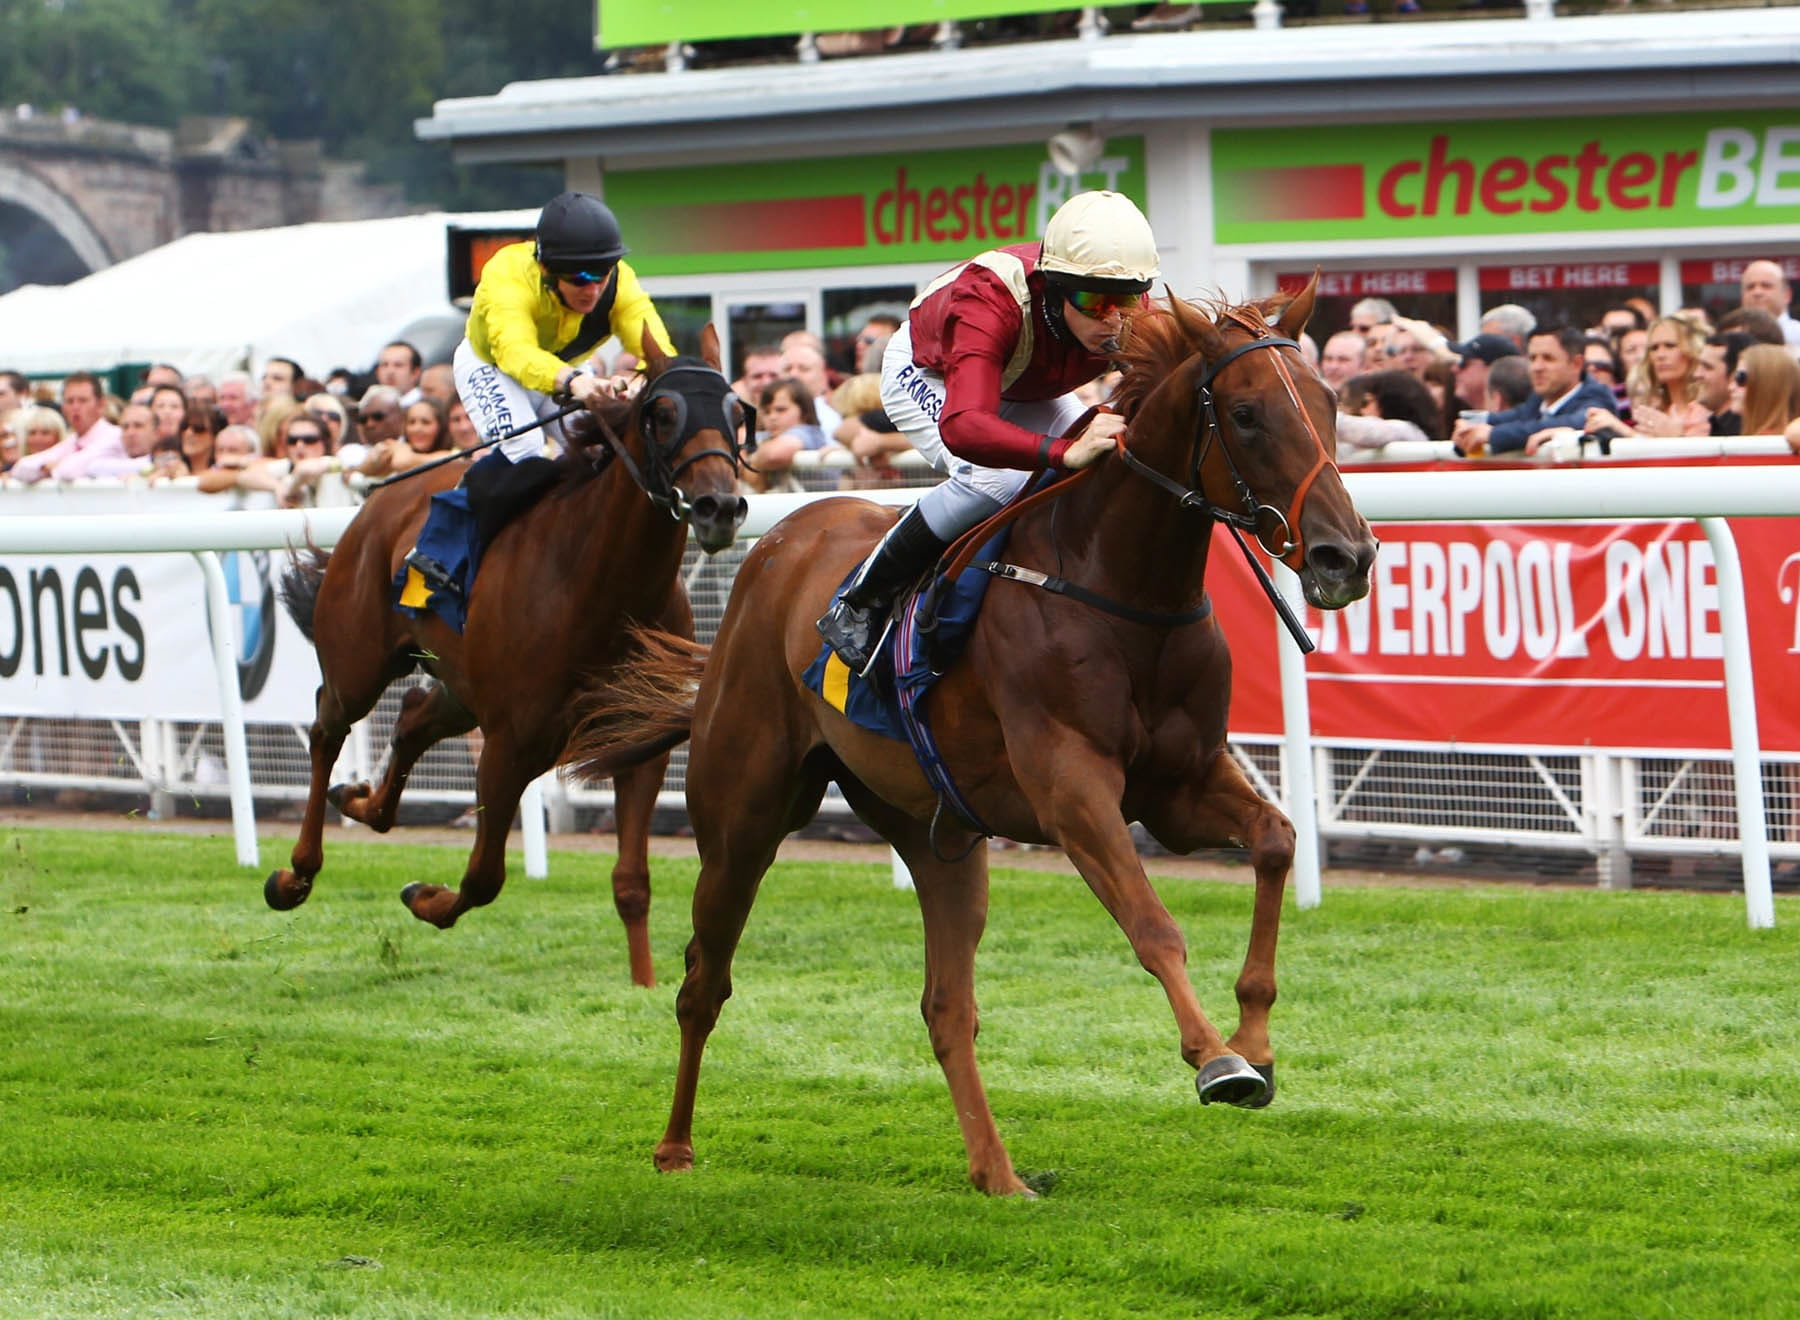 Dream Maker winning at Chester in 2012